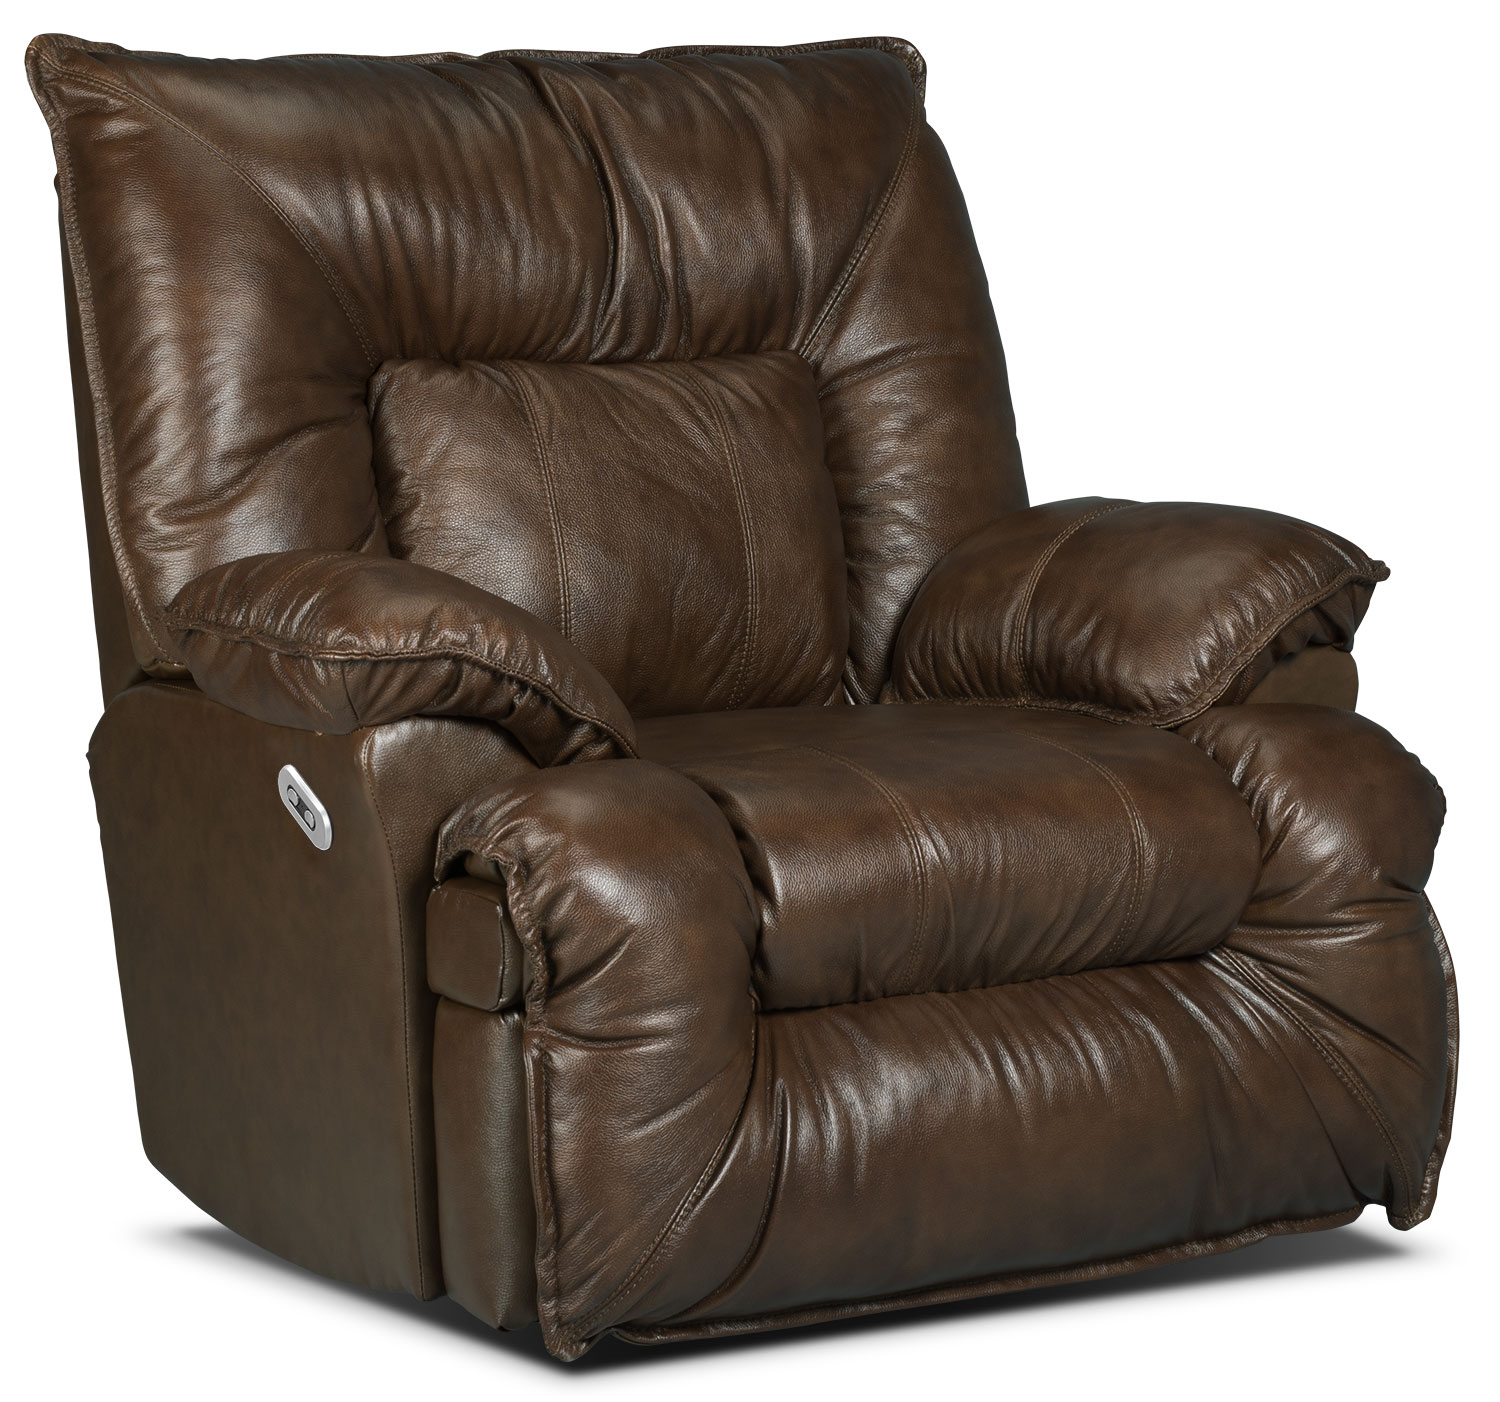 Living Room Furniture - Designed2B Recliner 7726 Leather-Look Fabric Power Lay-Flat Recline Chair - Walnut